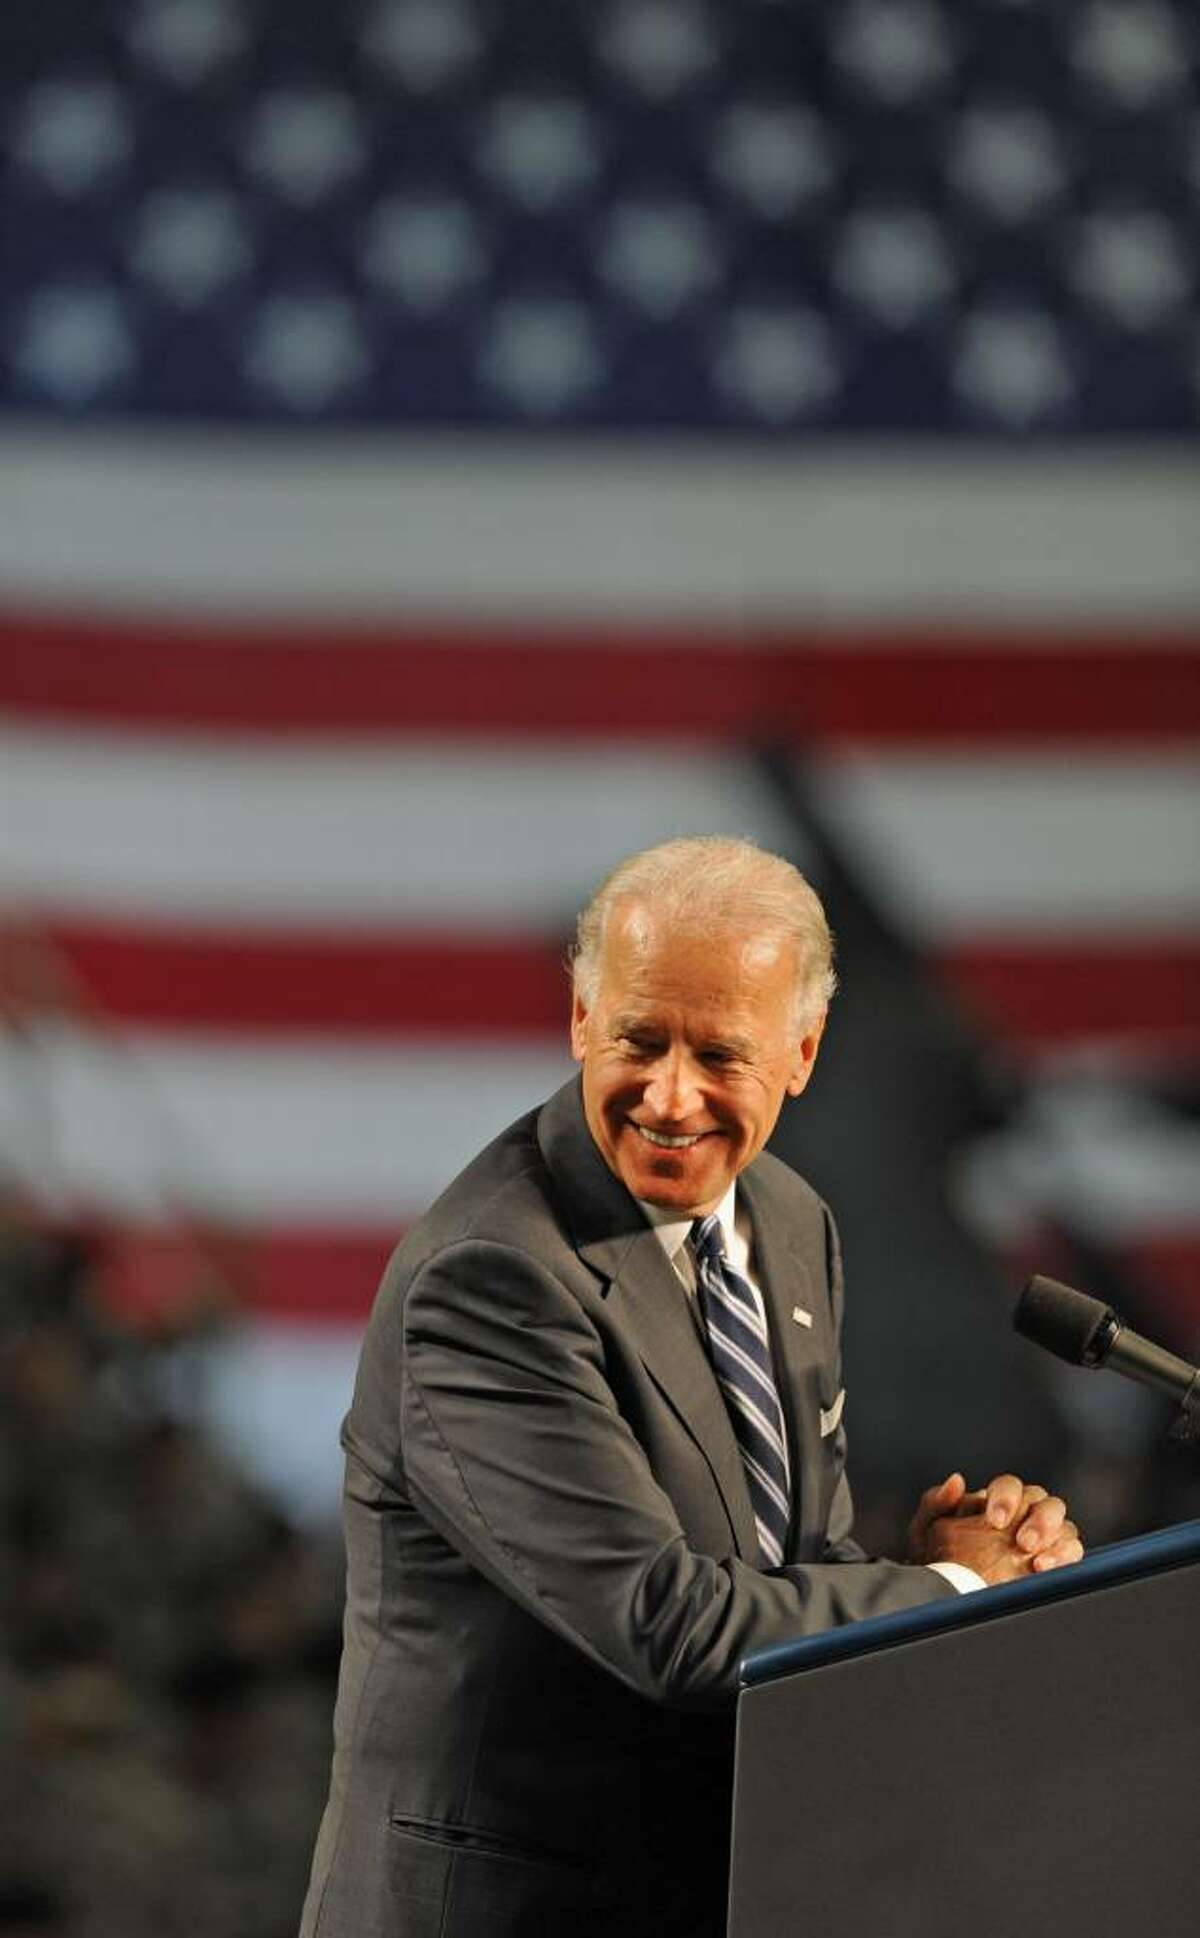 Vice President Joe Biden addresses the troops at Fort Drum in Fort Drum, NY, on July 28, 2010. The Vice President and his wife, Jill Biden, welcomed home the 2nd Brigade Combat Team, 10th Mountain Division, from Iraq. (Lori Van Buren / Times Union)